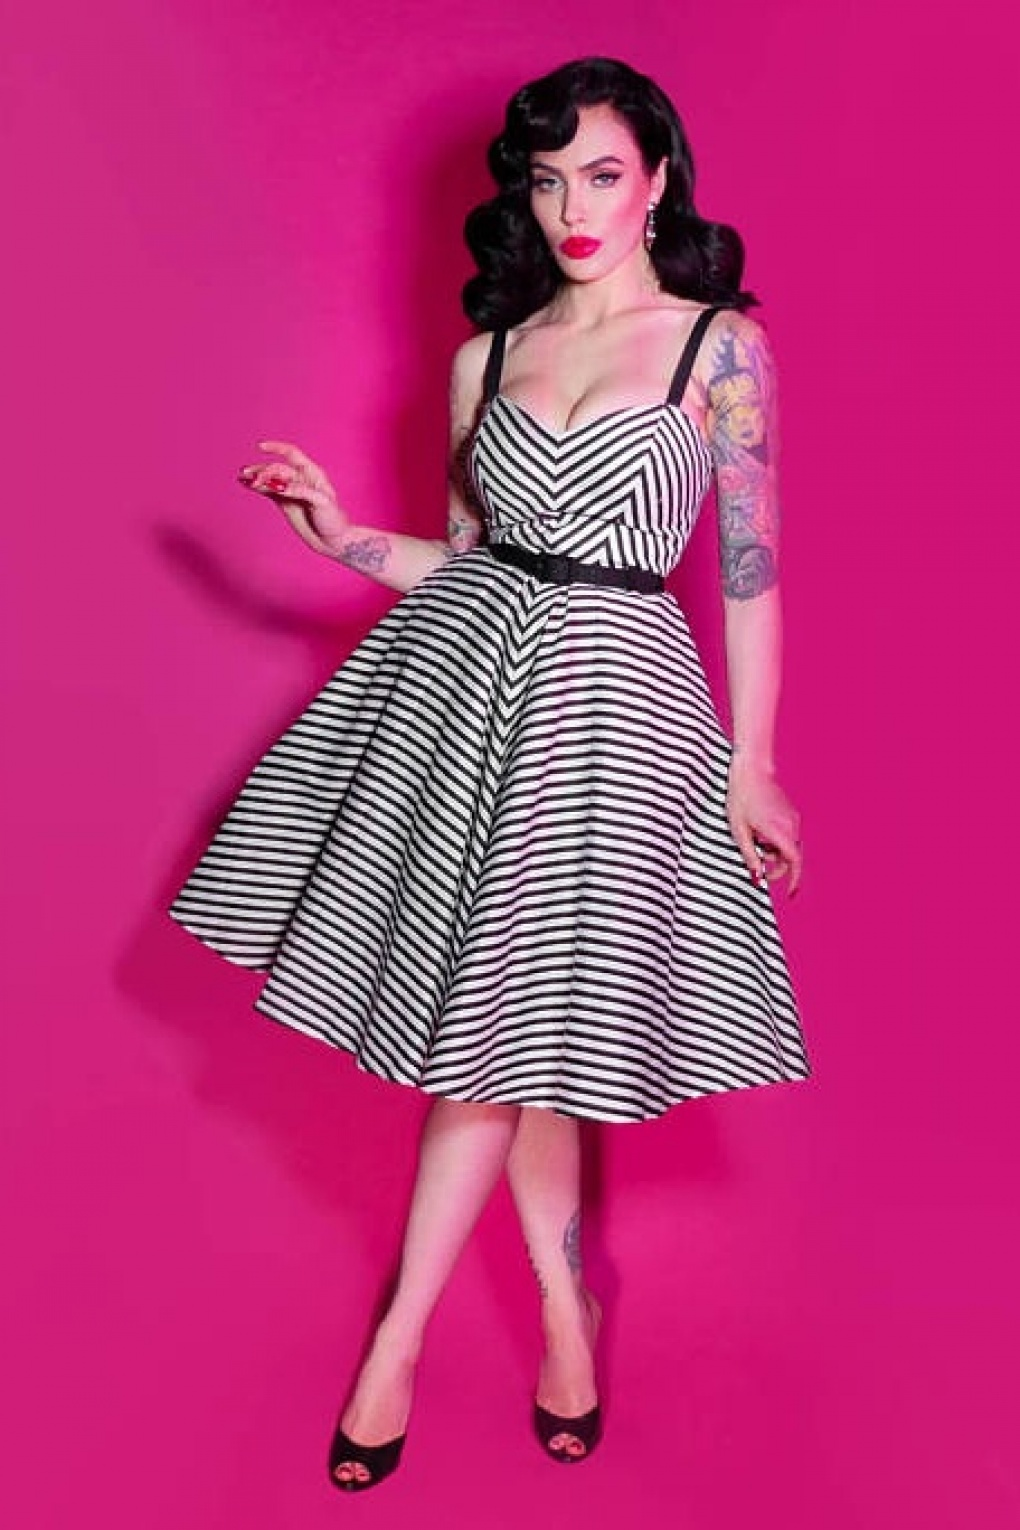 topvintage exclusive 50s dollface swing dress in black and white stripes. Black Bedroom Furniture Sets. Home Design Ideas